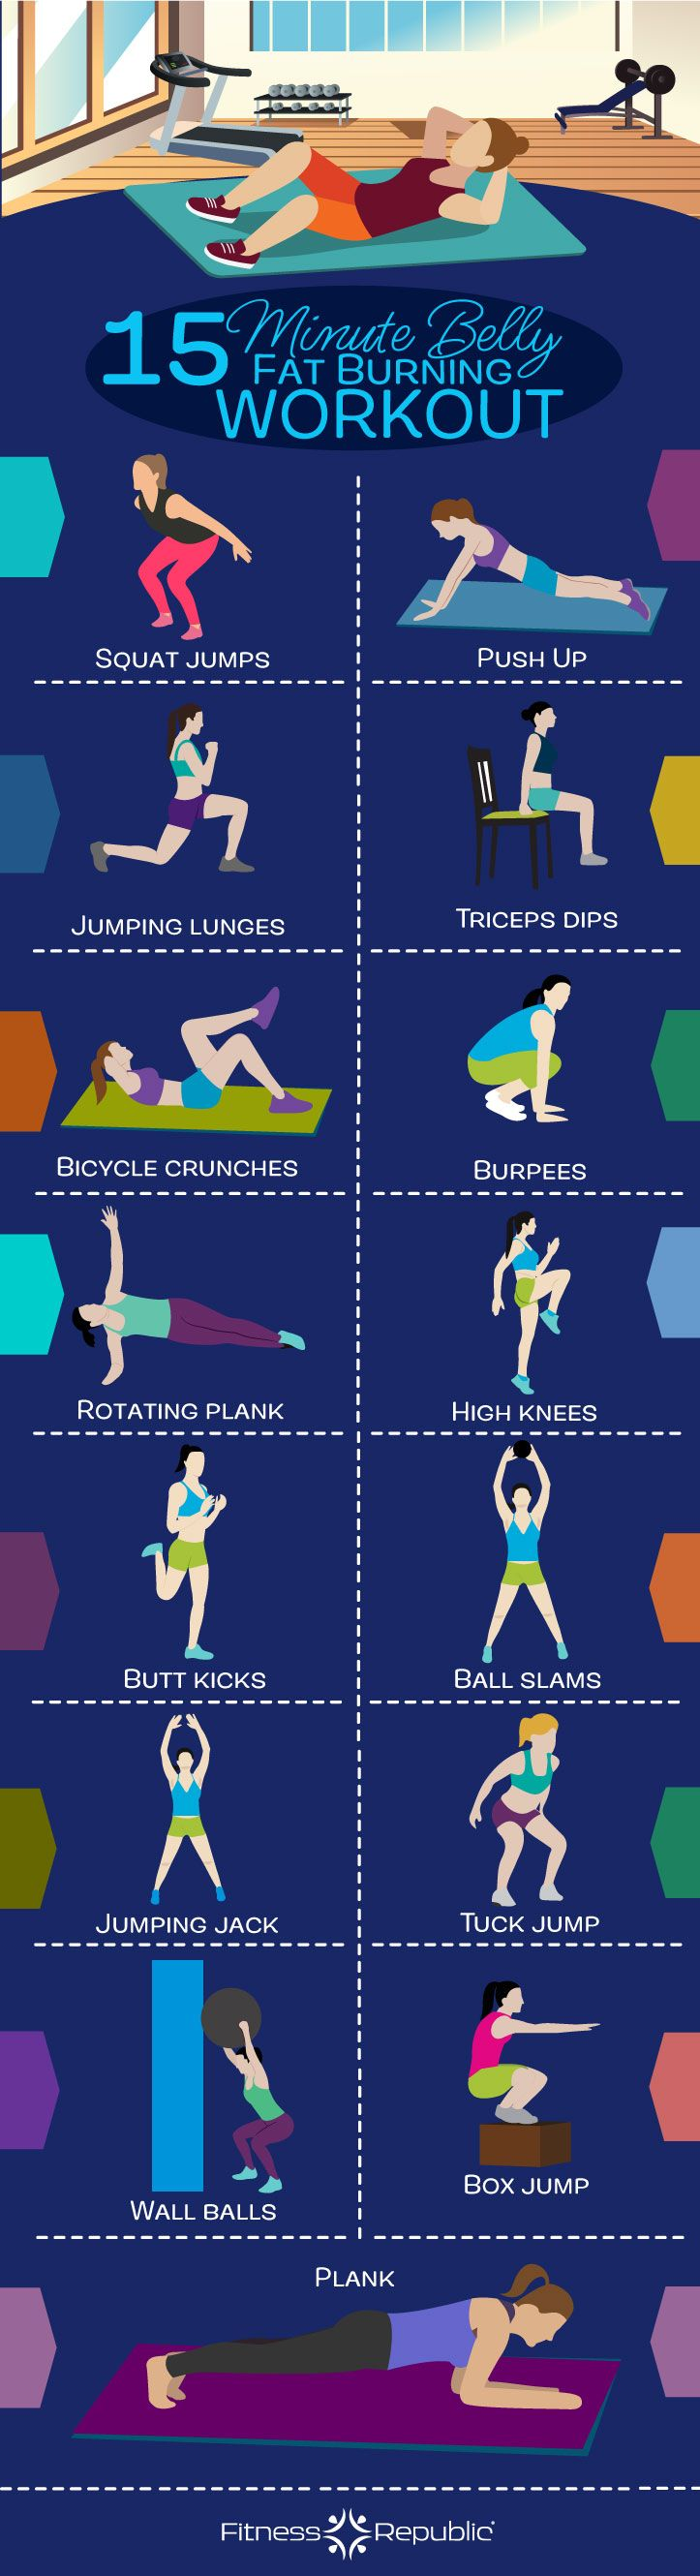 15-Minute Belly Fat Burning Workout | Fitness Republic